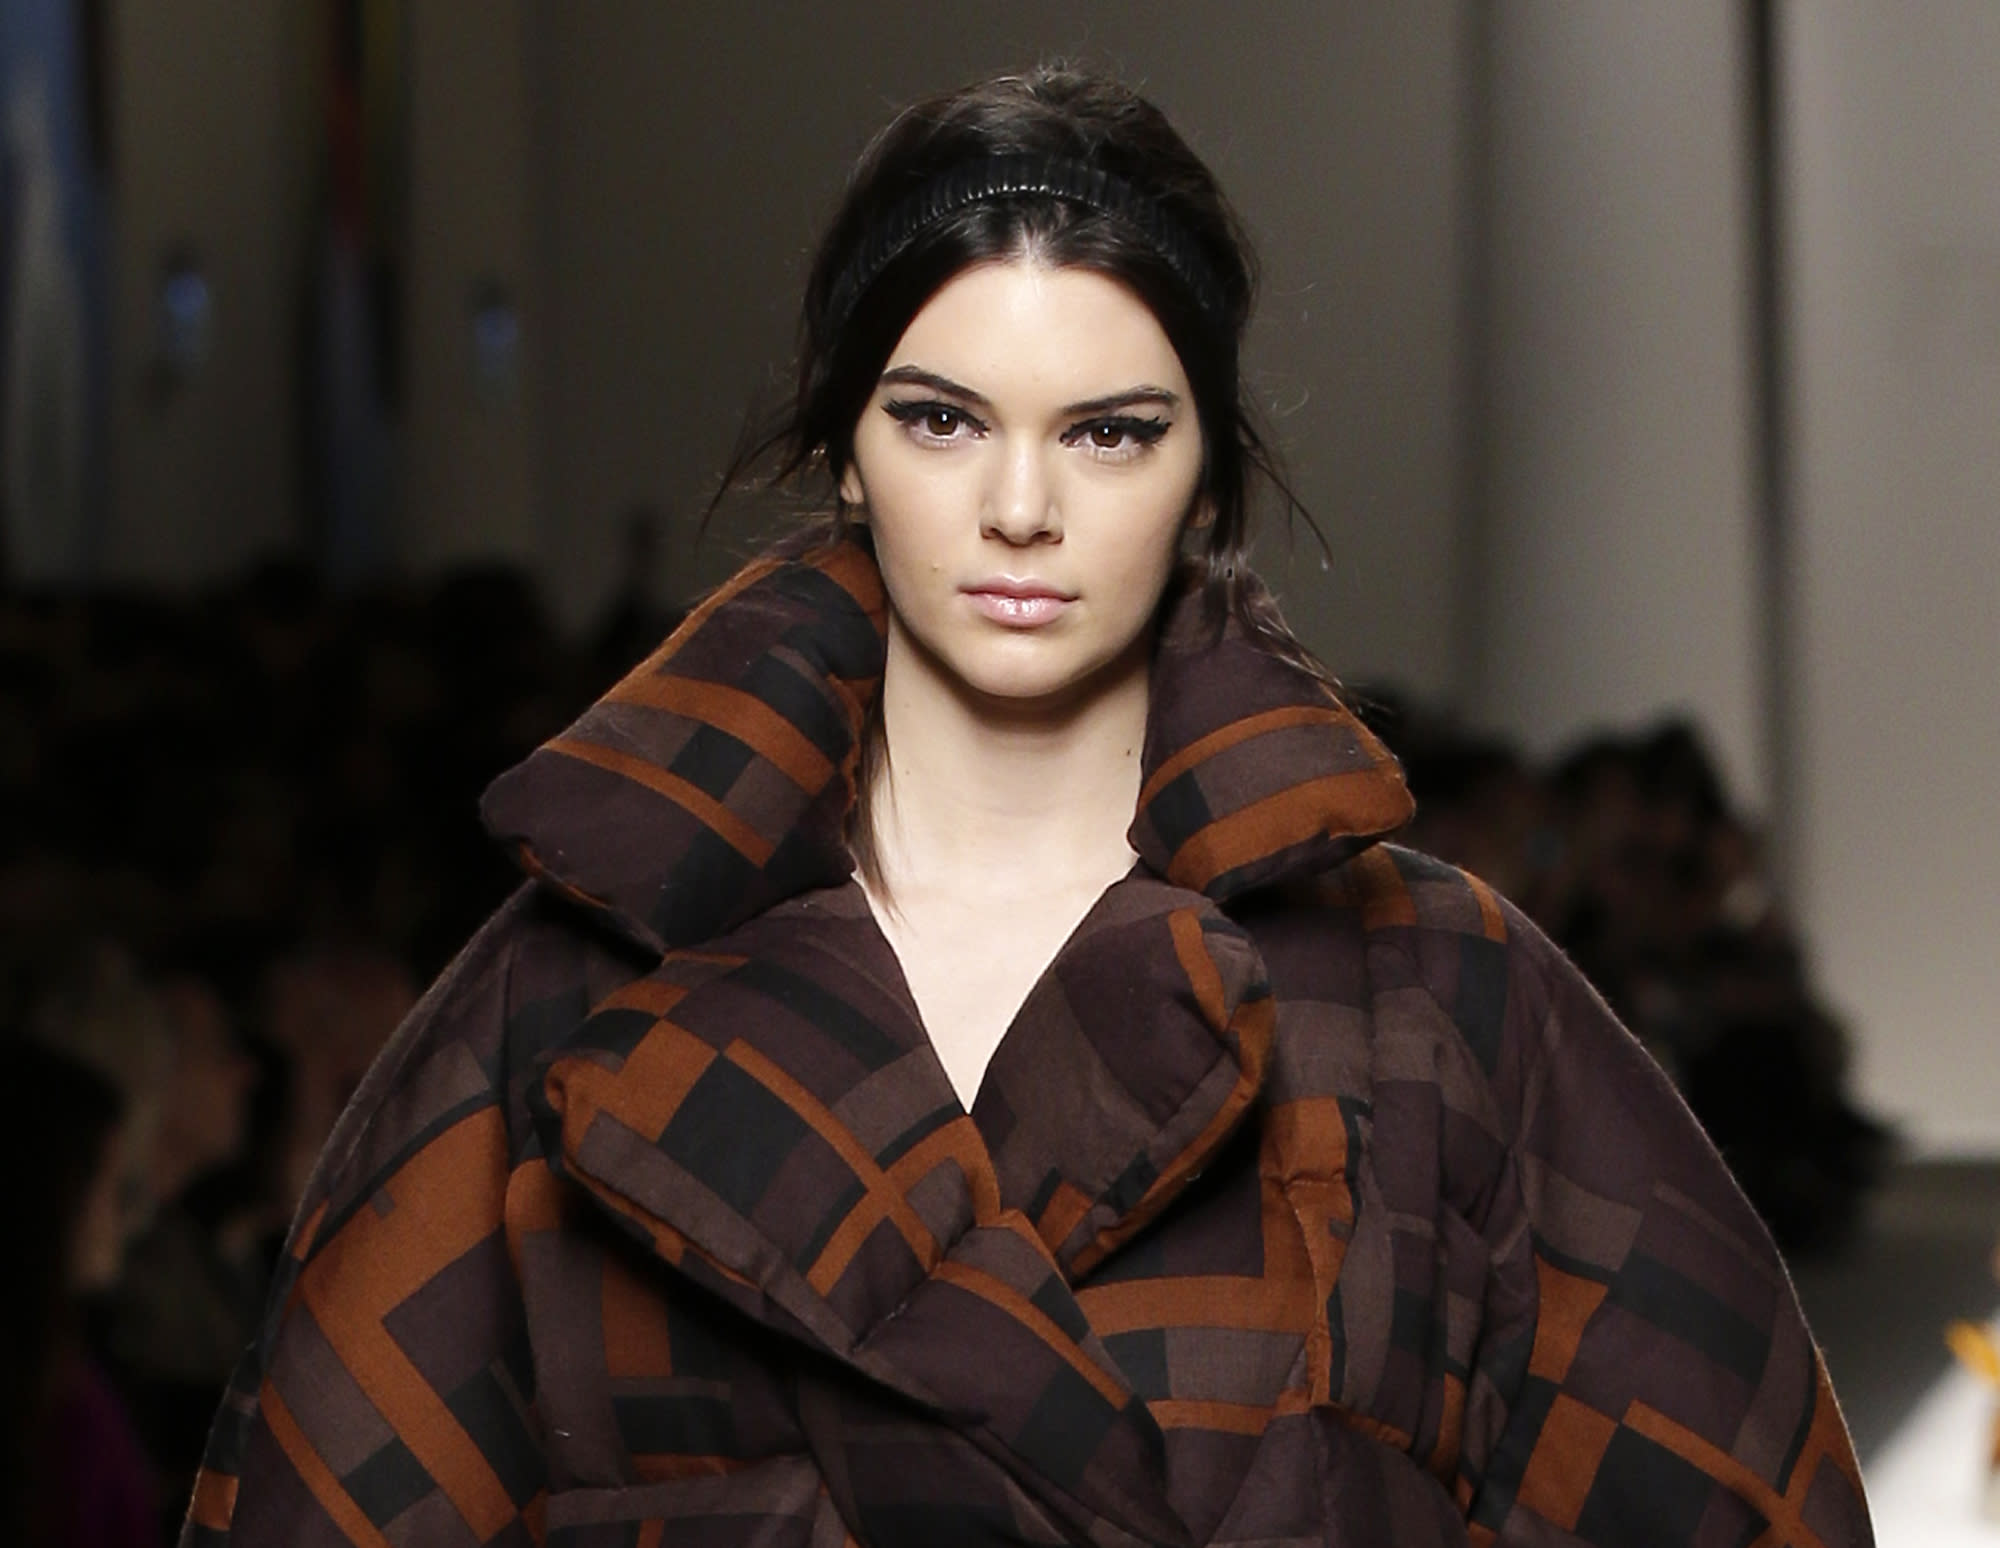 Kendall Jenner struts for Fendi, Kate Mara cozy in Max Mara